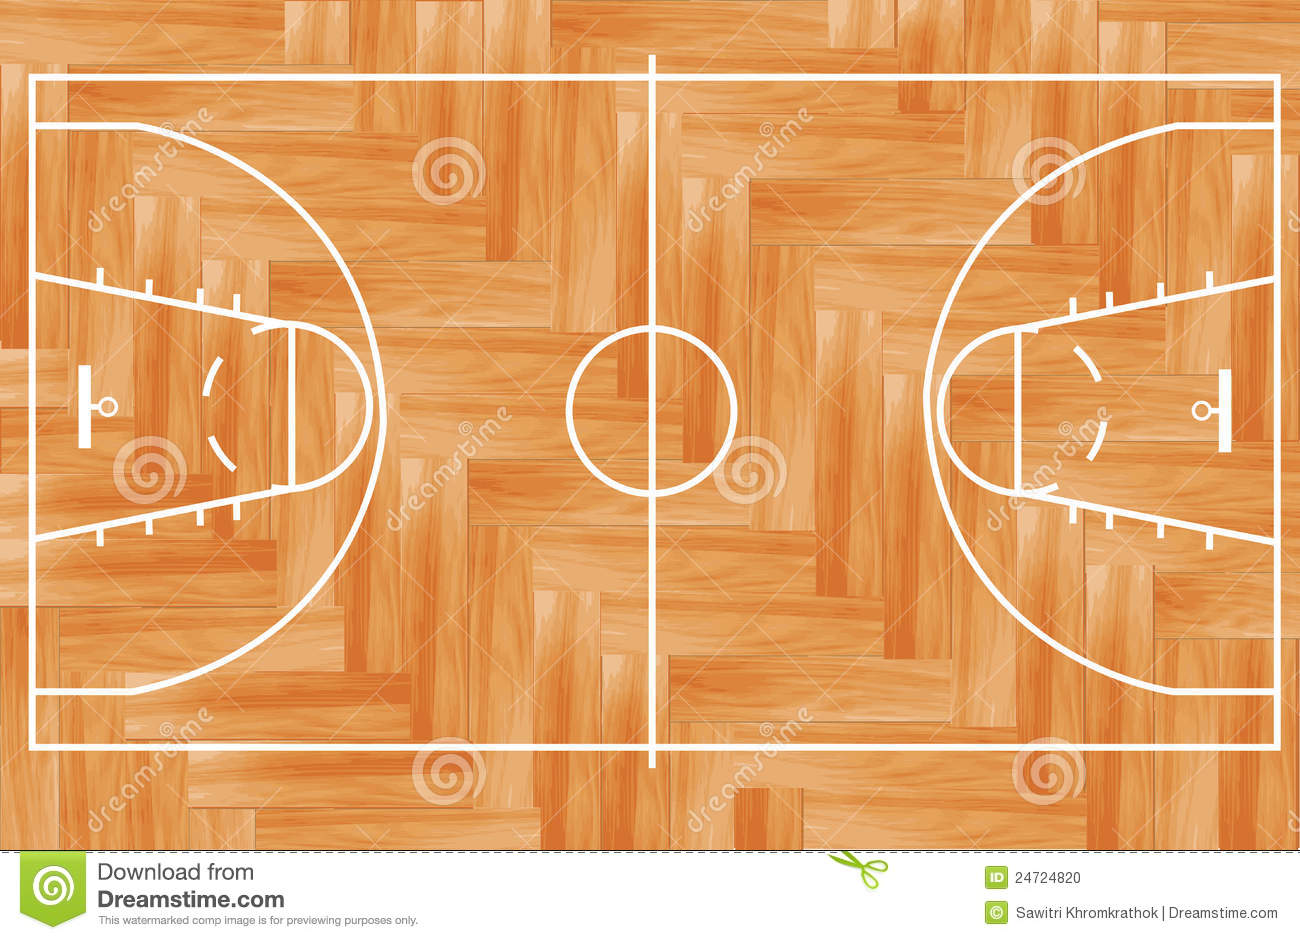 Vector Wooden Basketball Court Stock Vector Illustration